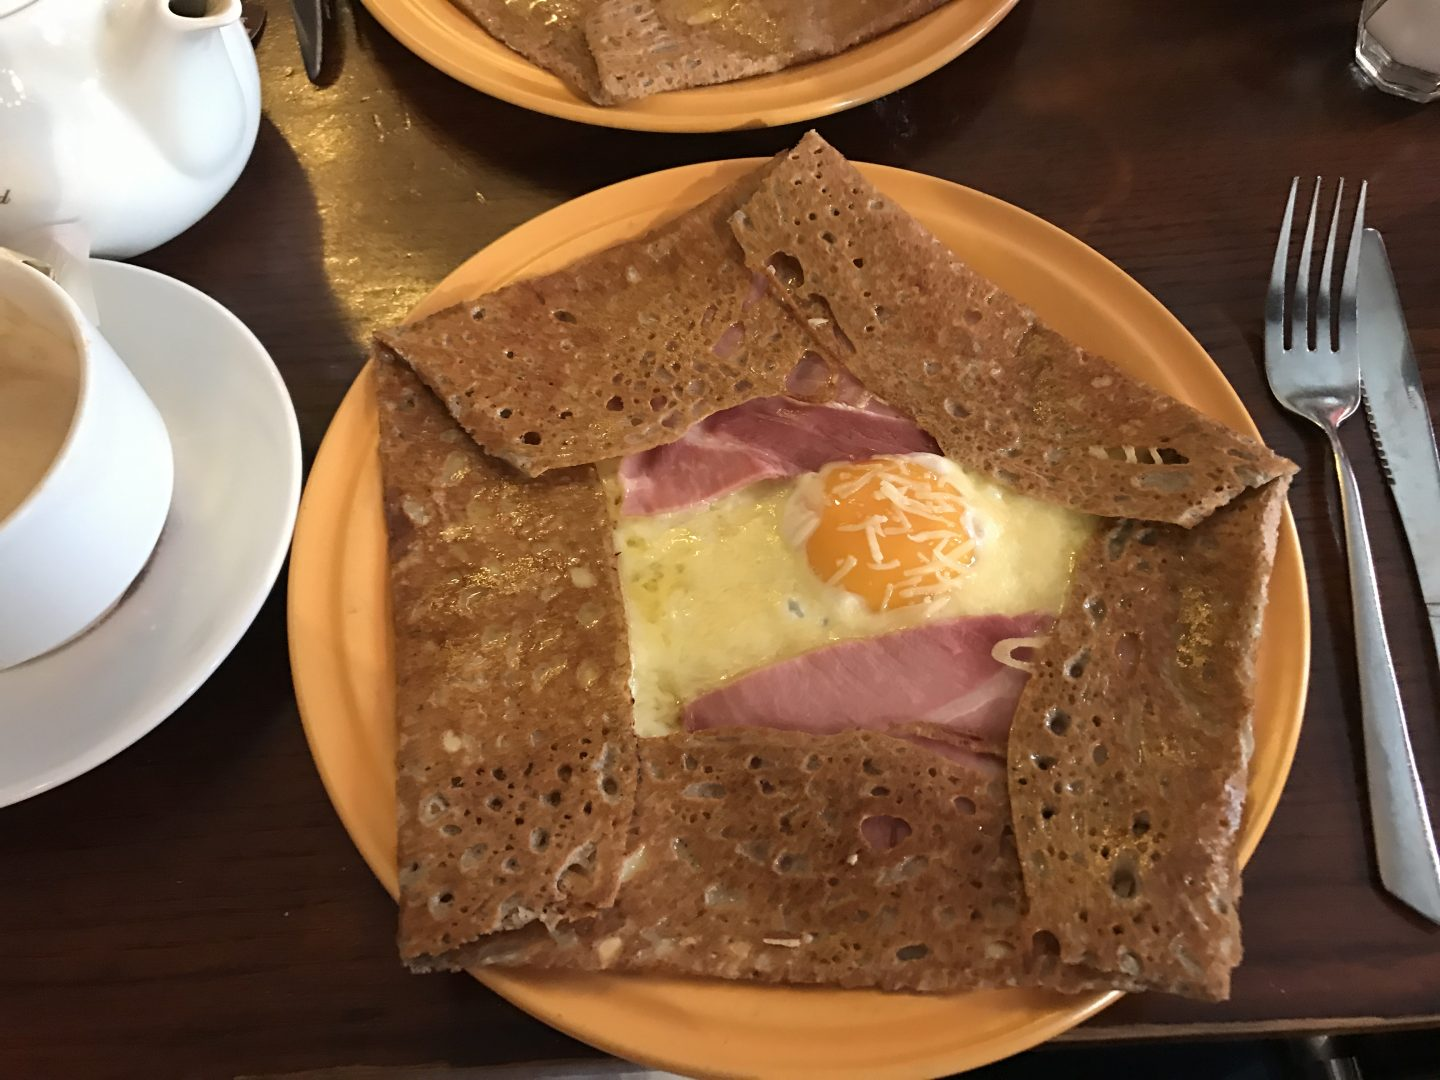 Cheese and Ham Crepe at Crêperie Plougastel